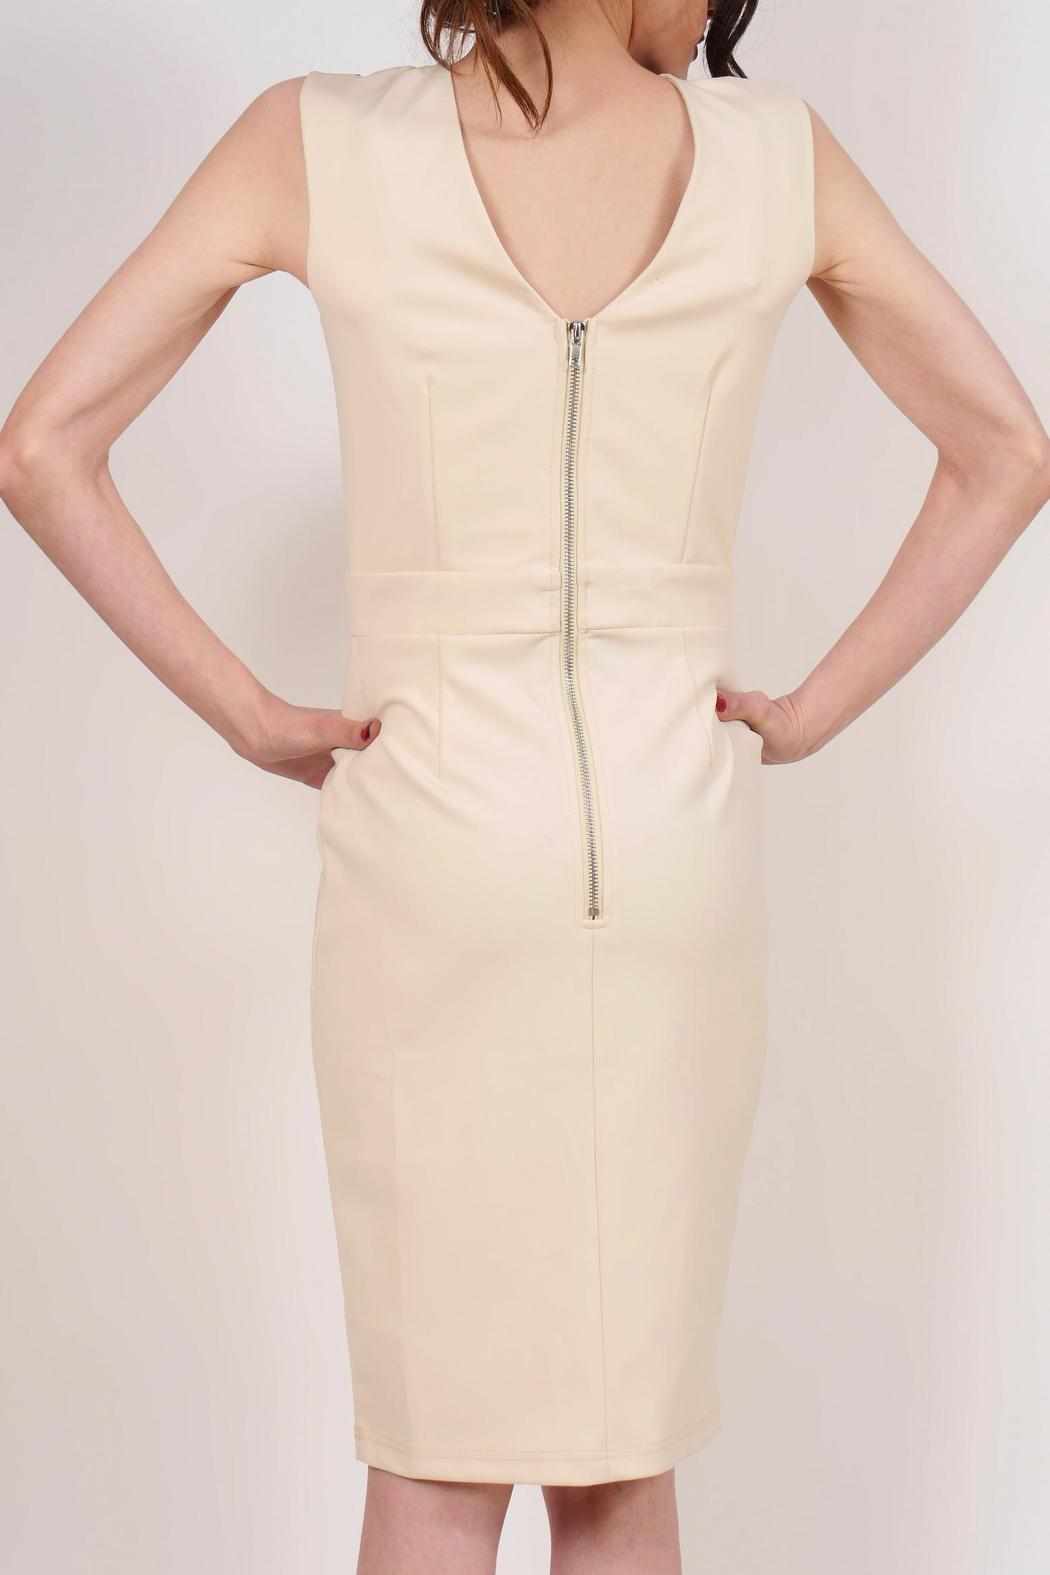 Little Mistress Cream Cocktail Dress - Back Cropped Image